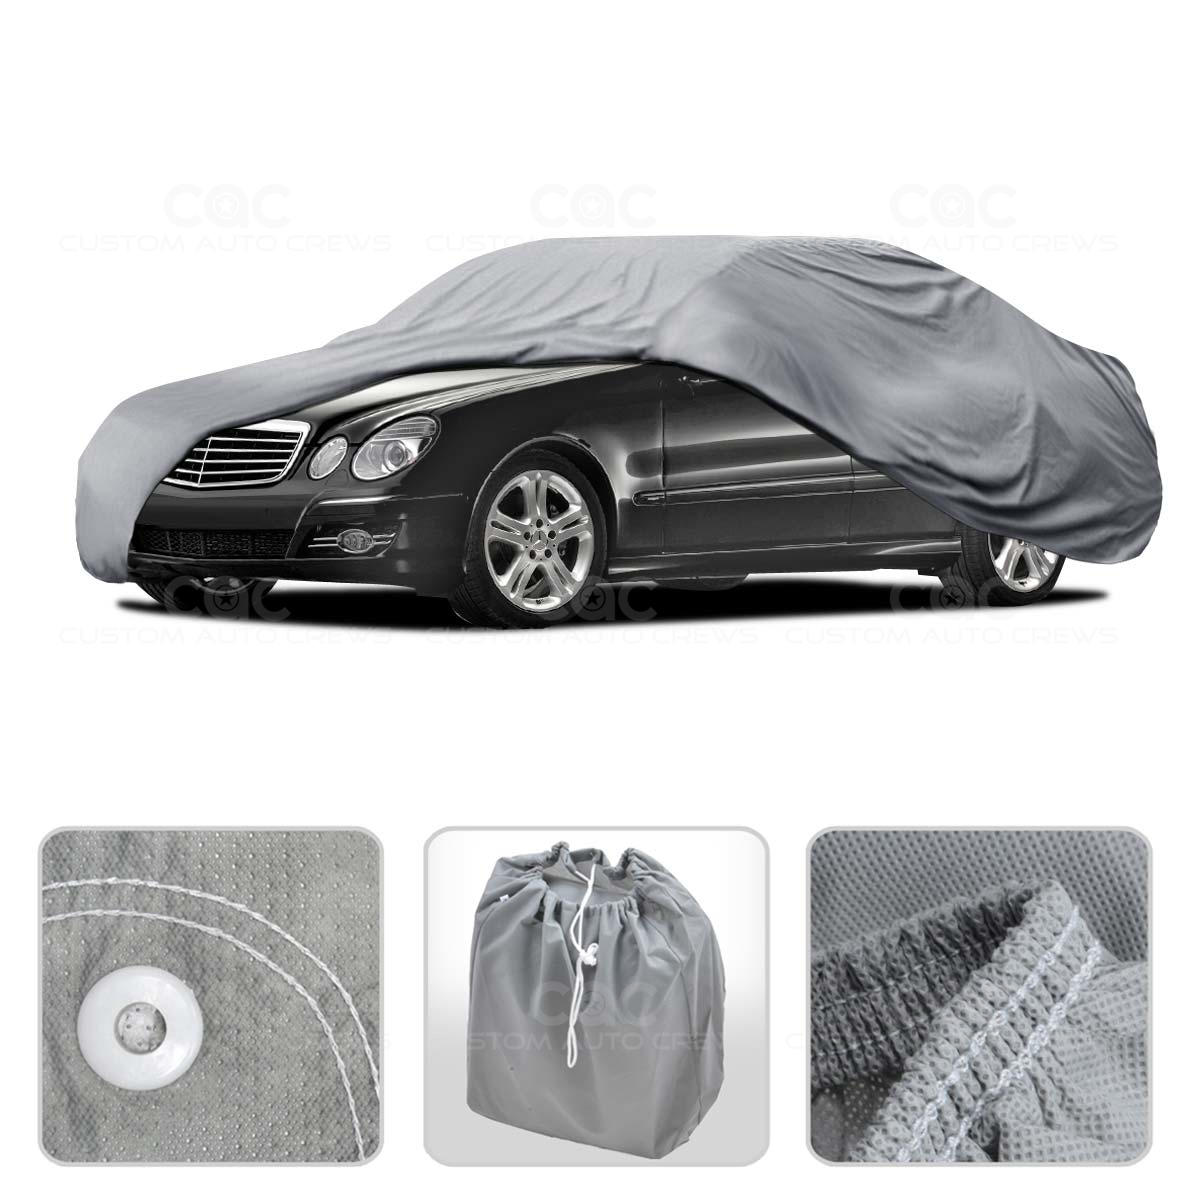 car cover for mercedes e class outdoor breathable sun dust proof protection ebay. Black Bedroom Furniture Sets. Home Design Ideas